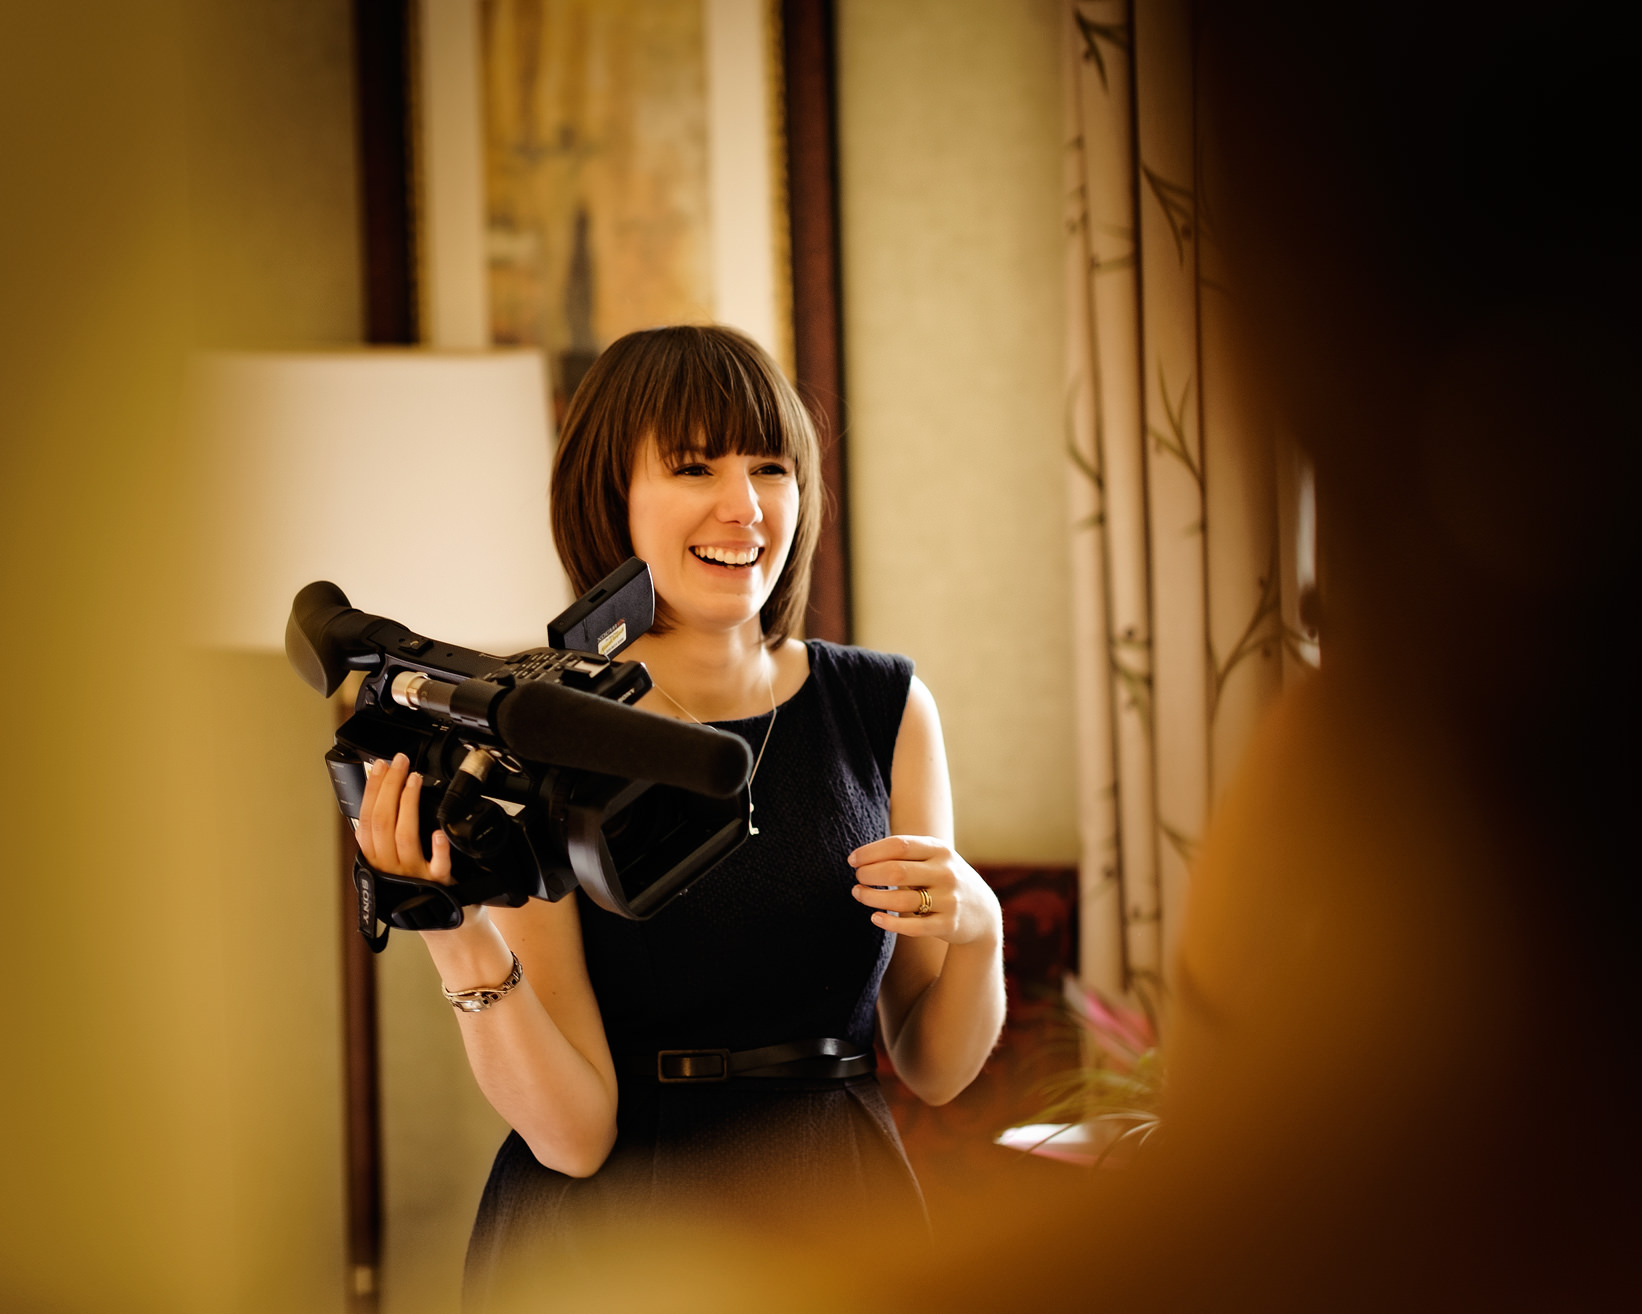 A female videographer smiles with her sony video camera at a wedding